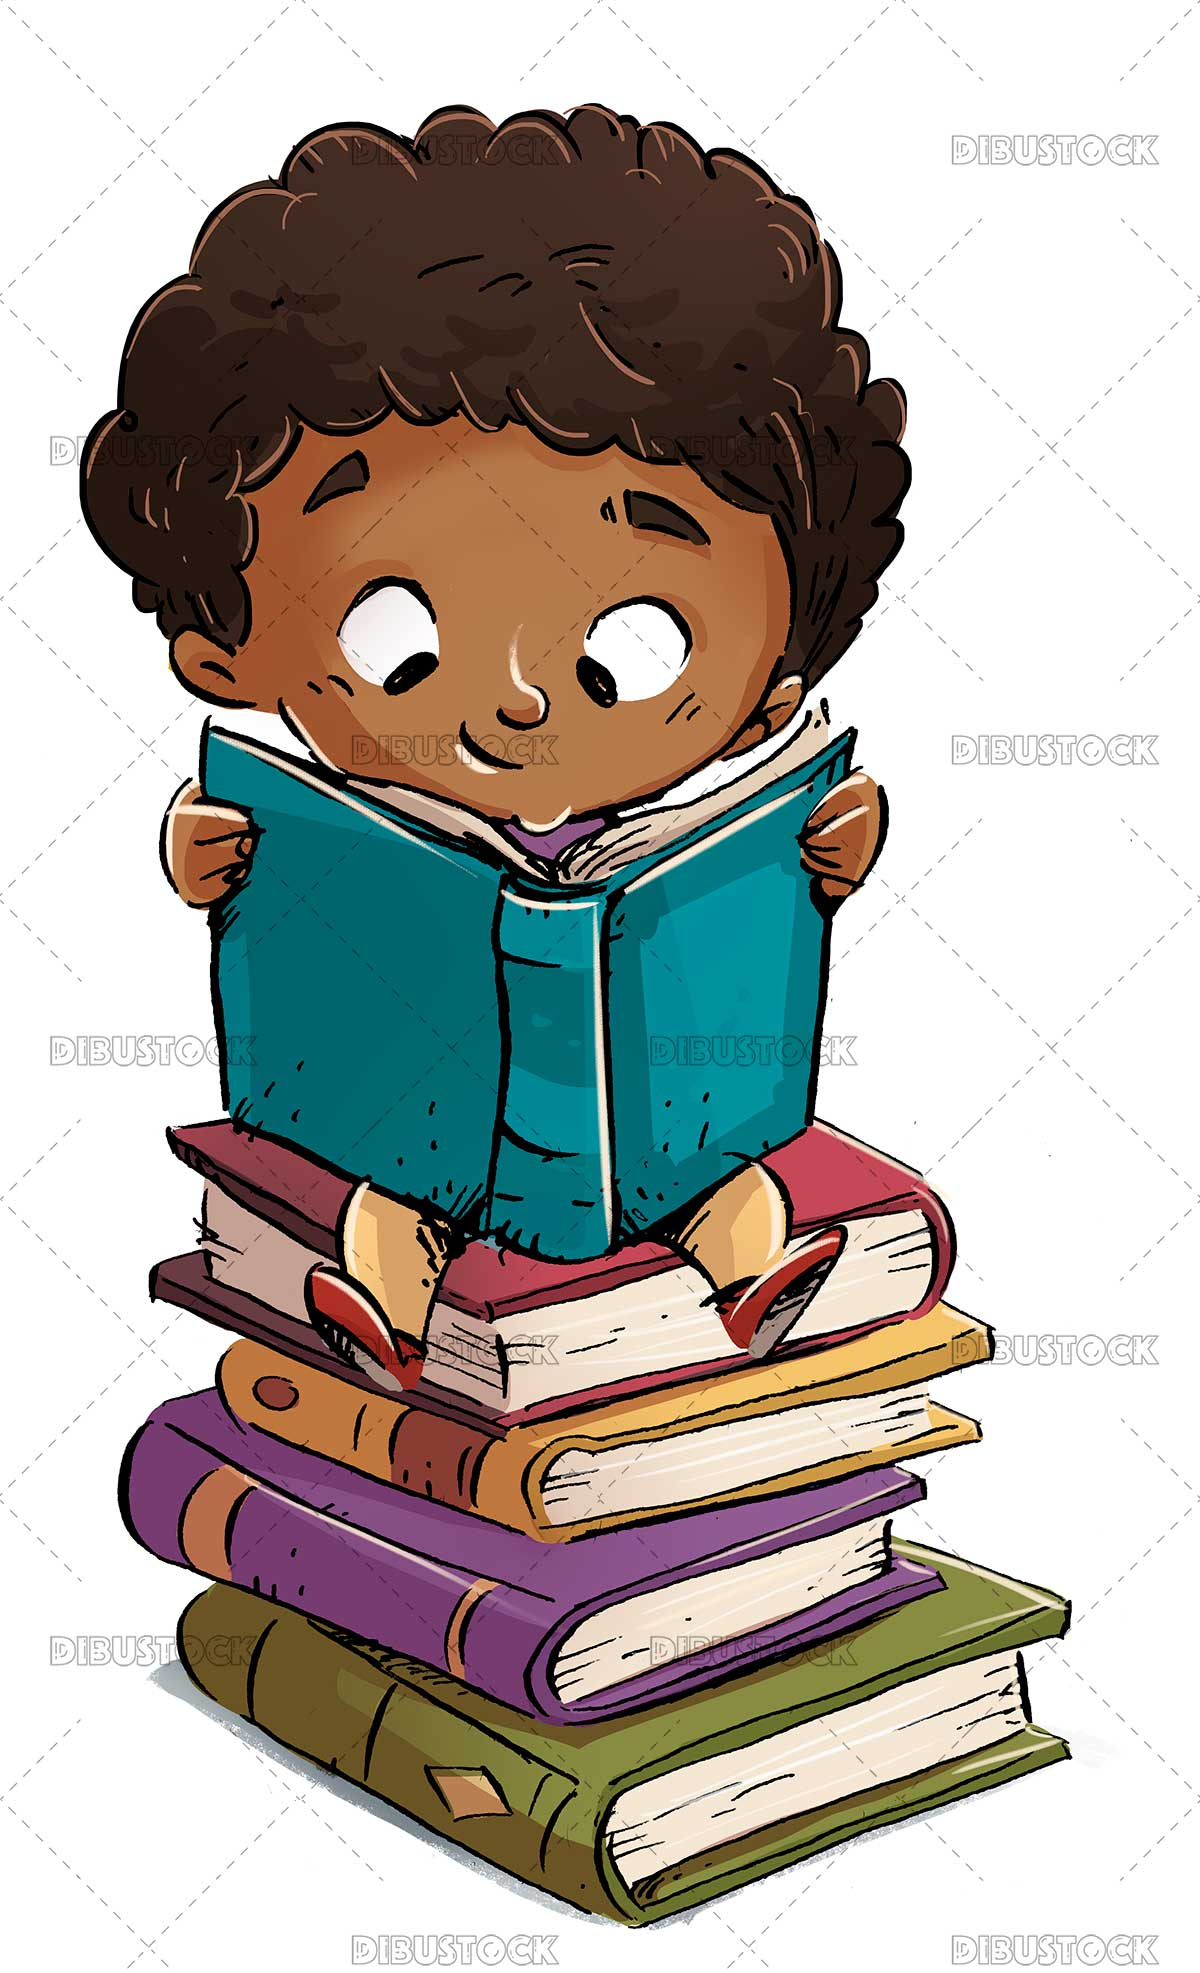 African American boy reading on a pile of books